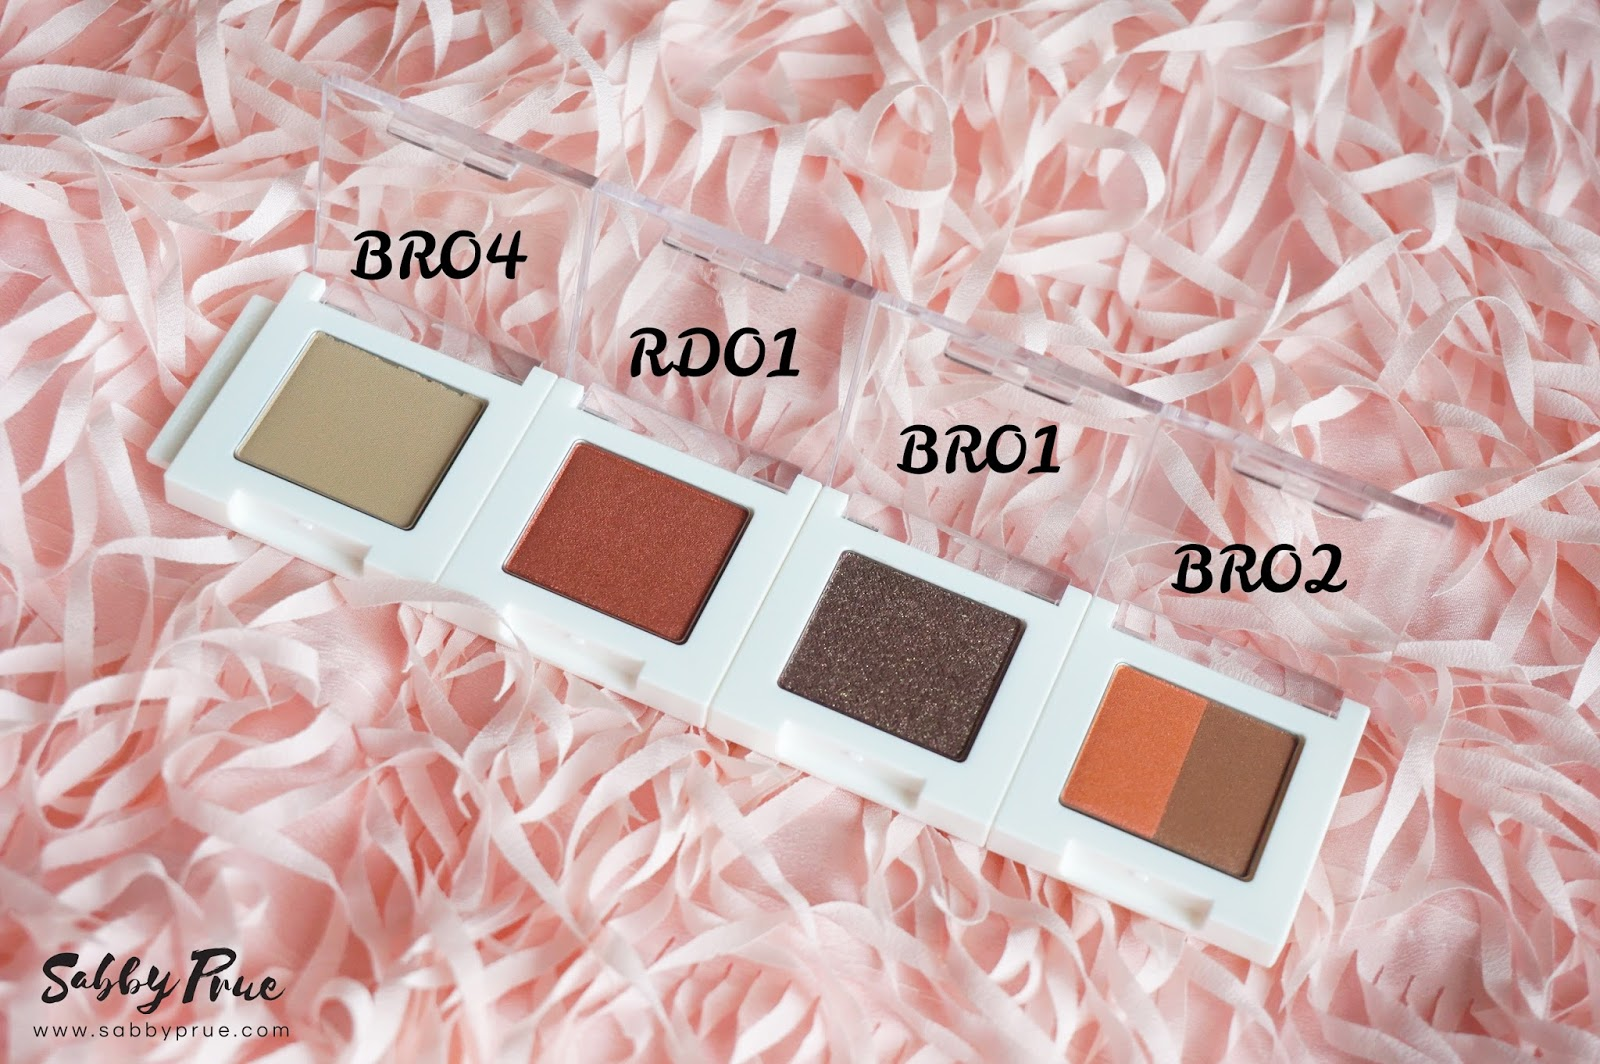 New Makeup Releases From THE FACE SHOP - ♥ Sabby Prue